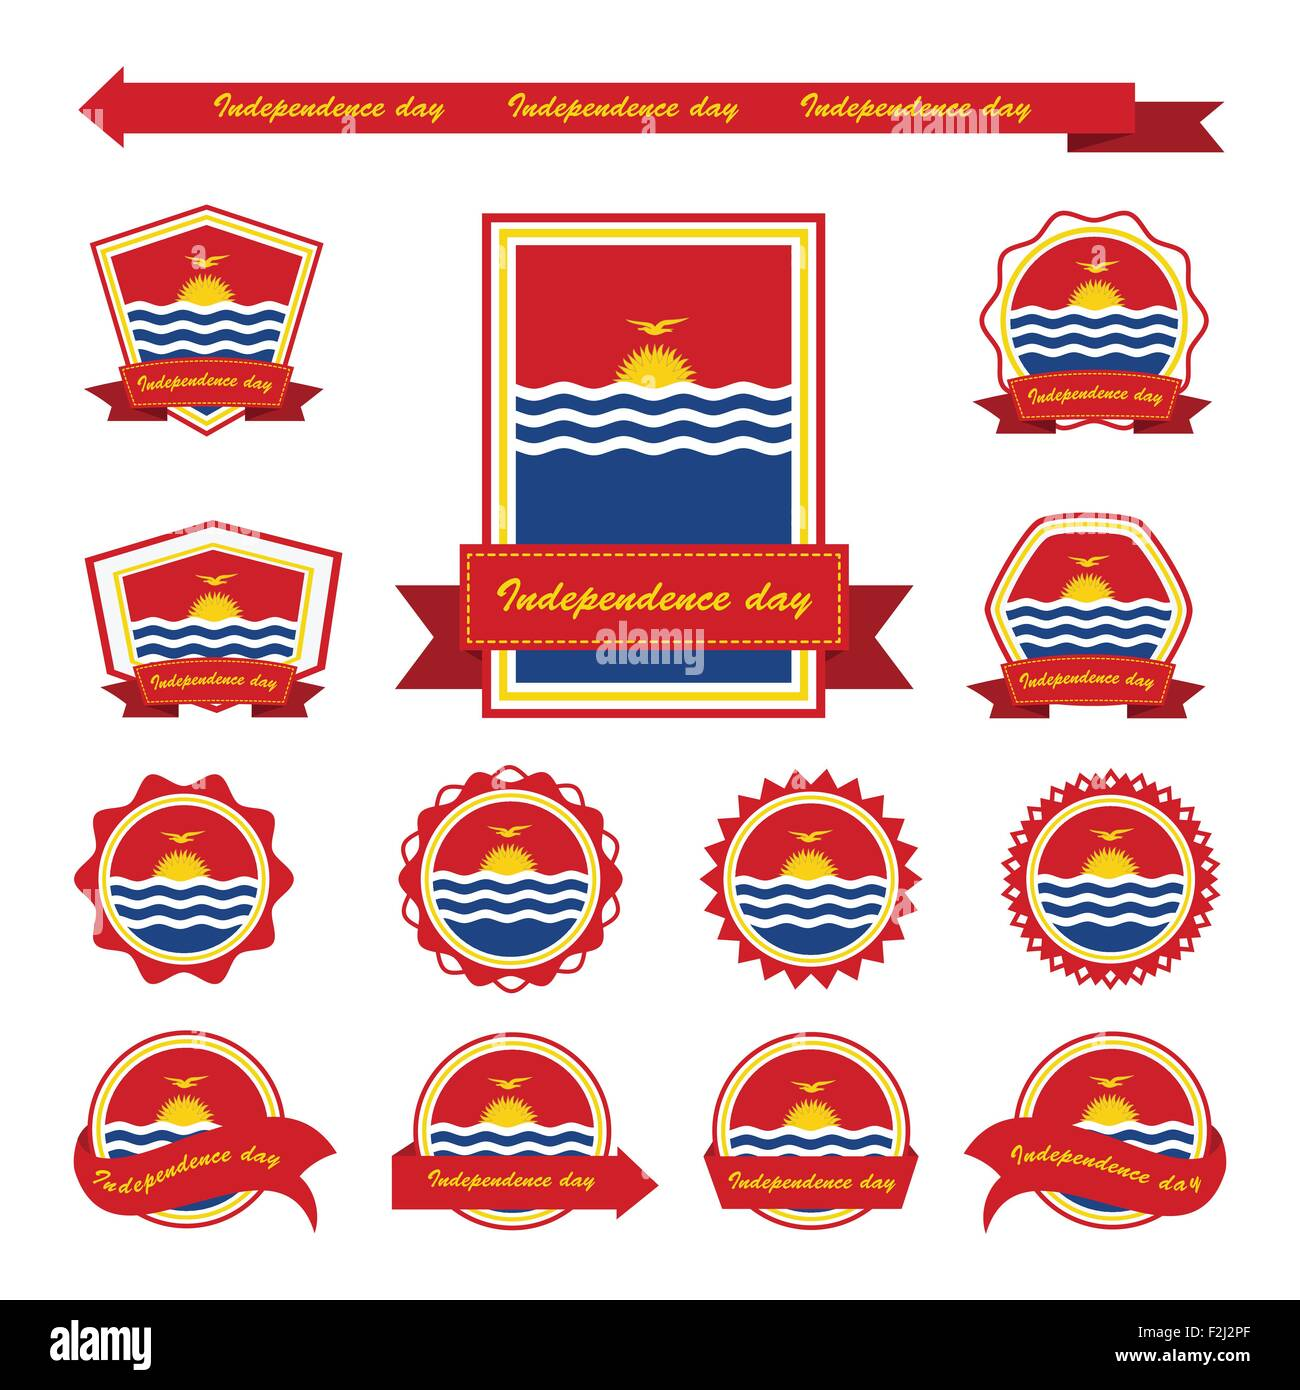 Kiribati independence day flags infographic design - Stock Image